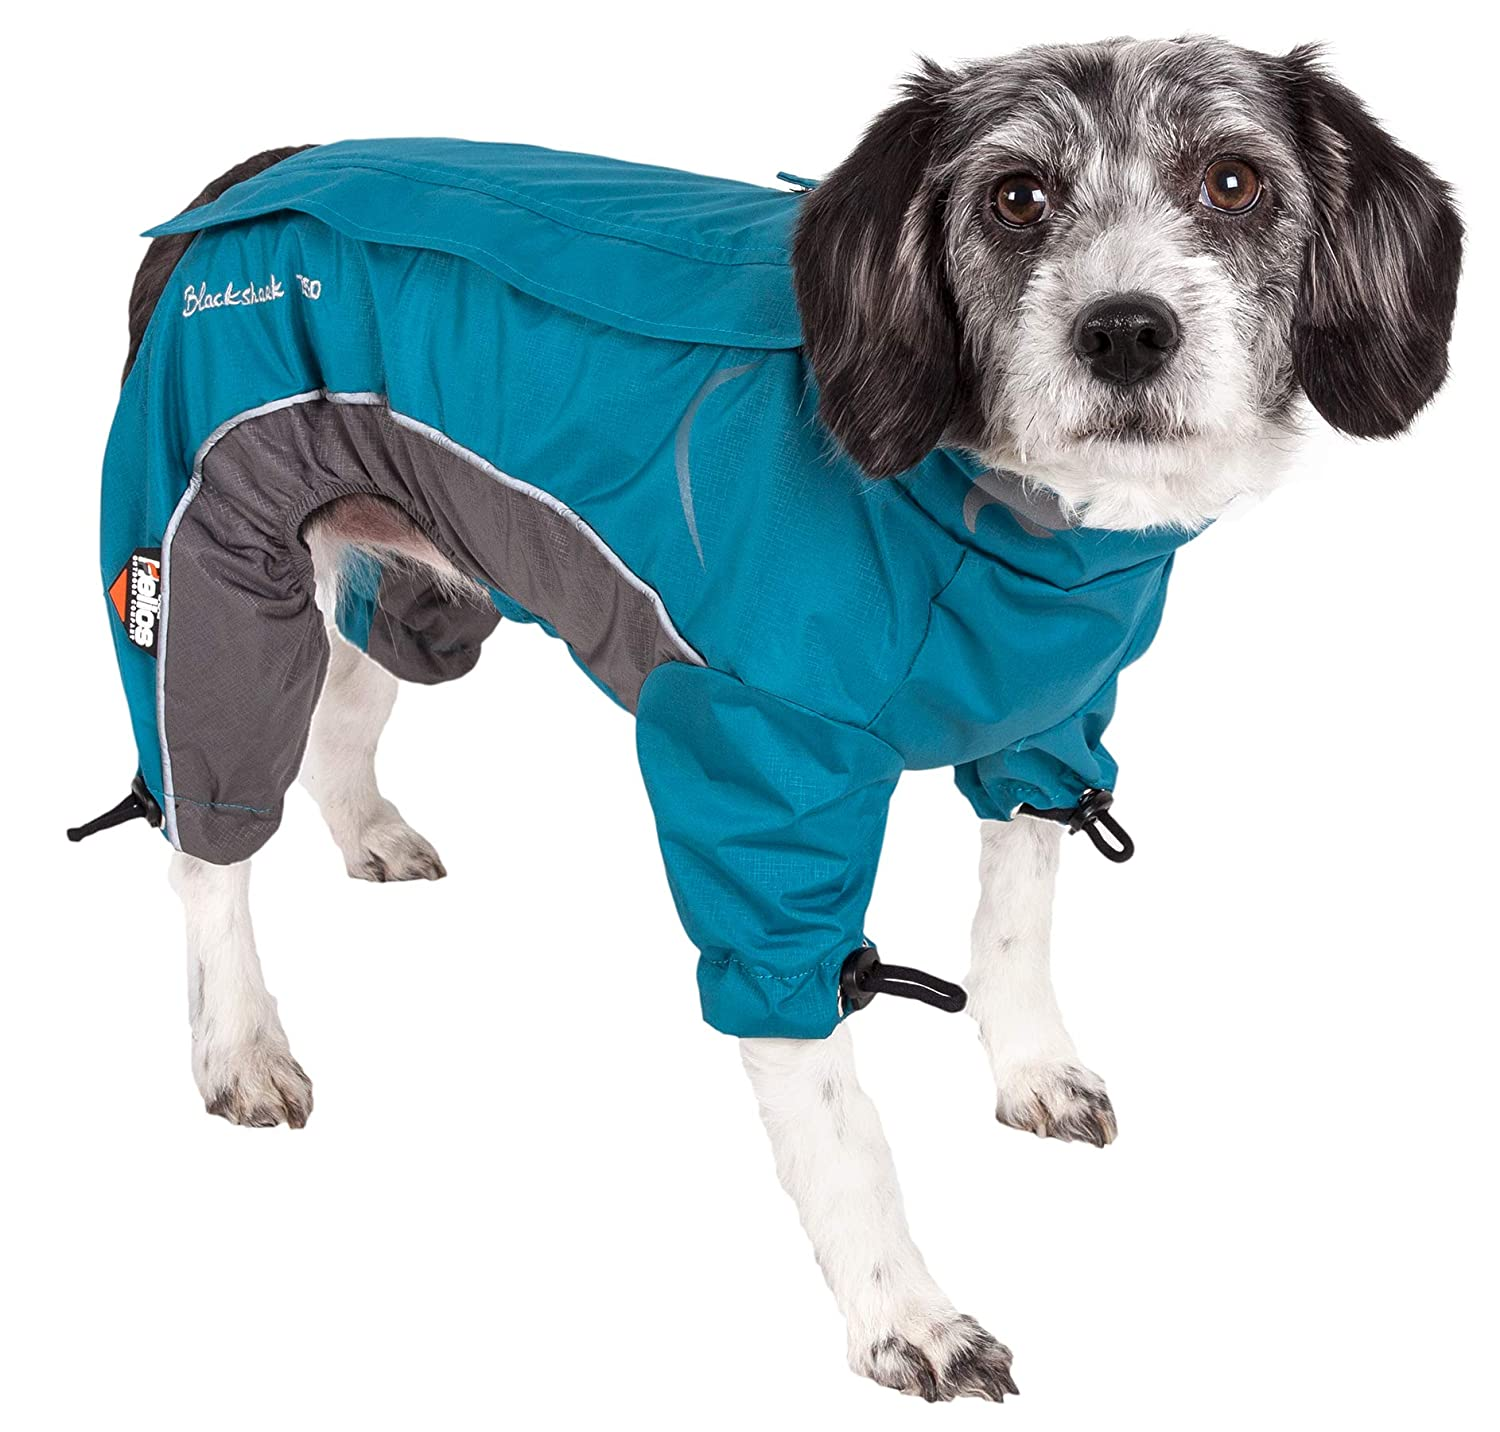 bluee Small bluee Small DOGHELIOS 'Blizzard' Full-Bodied Comfort-Fitted Adjustable and 3M Reflective Winter Insulated Pet Dog Coat Jacket w Blackshark Technology, Small, bluee